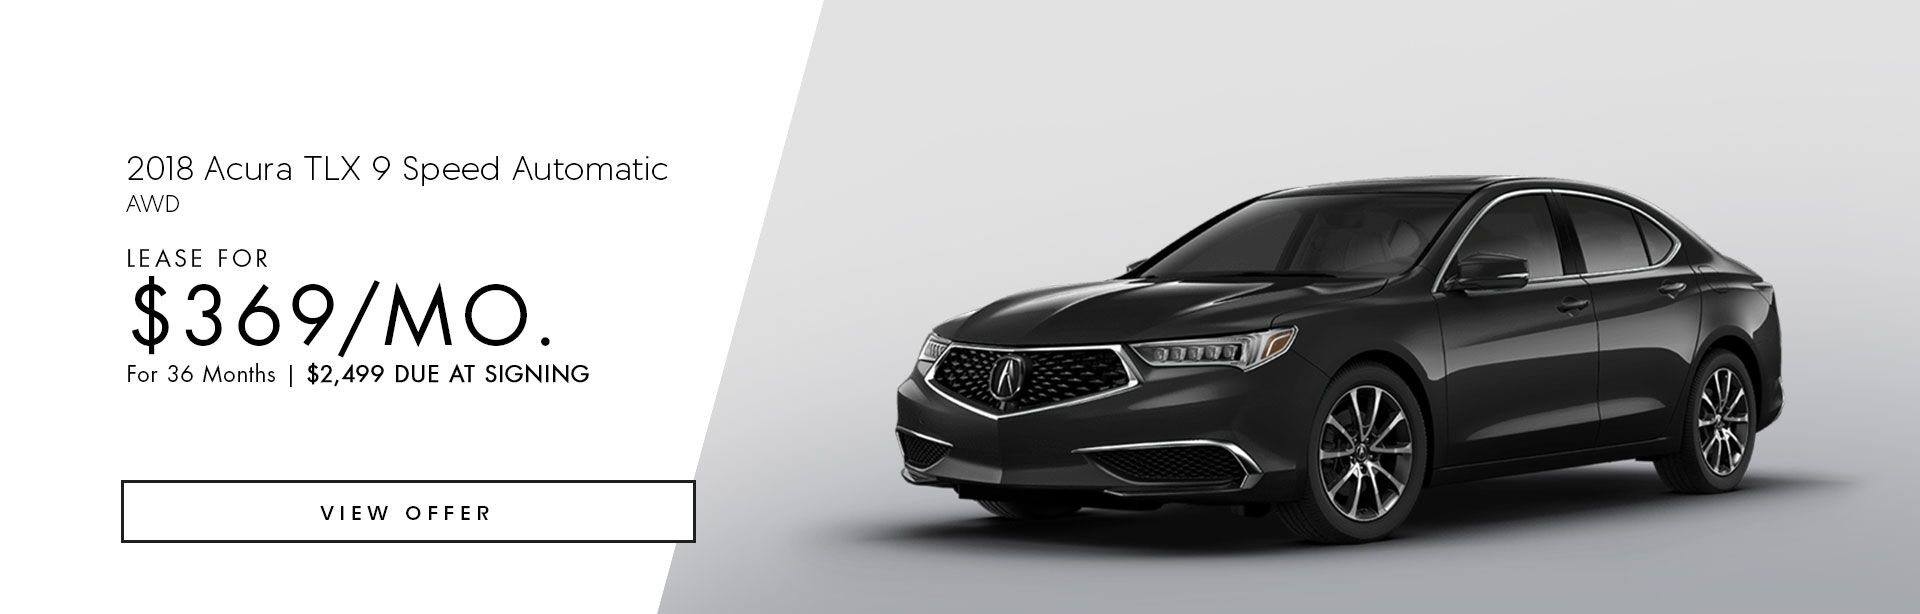 2018 Acura TLX 9 Speed AWD